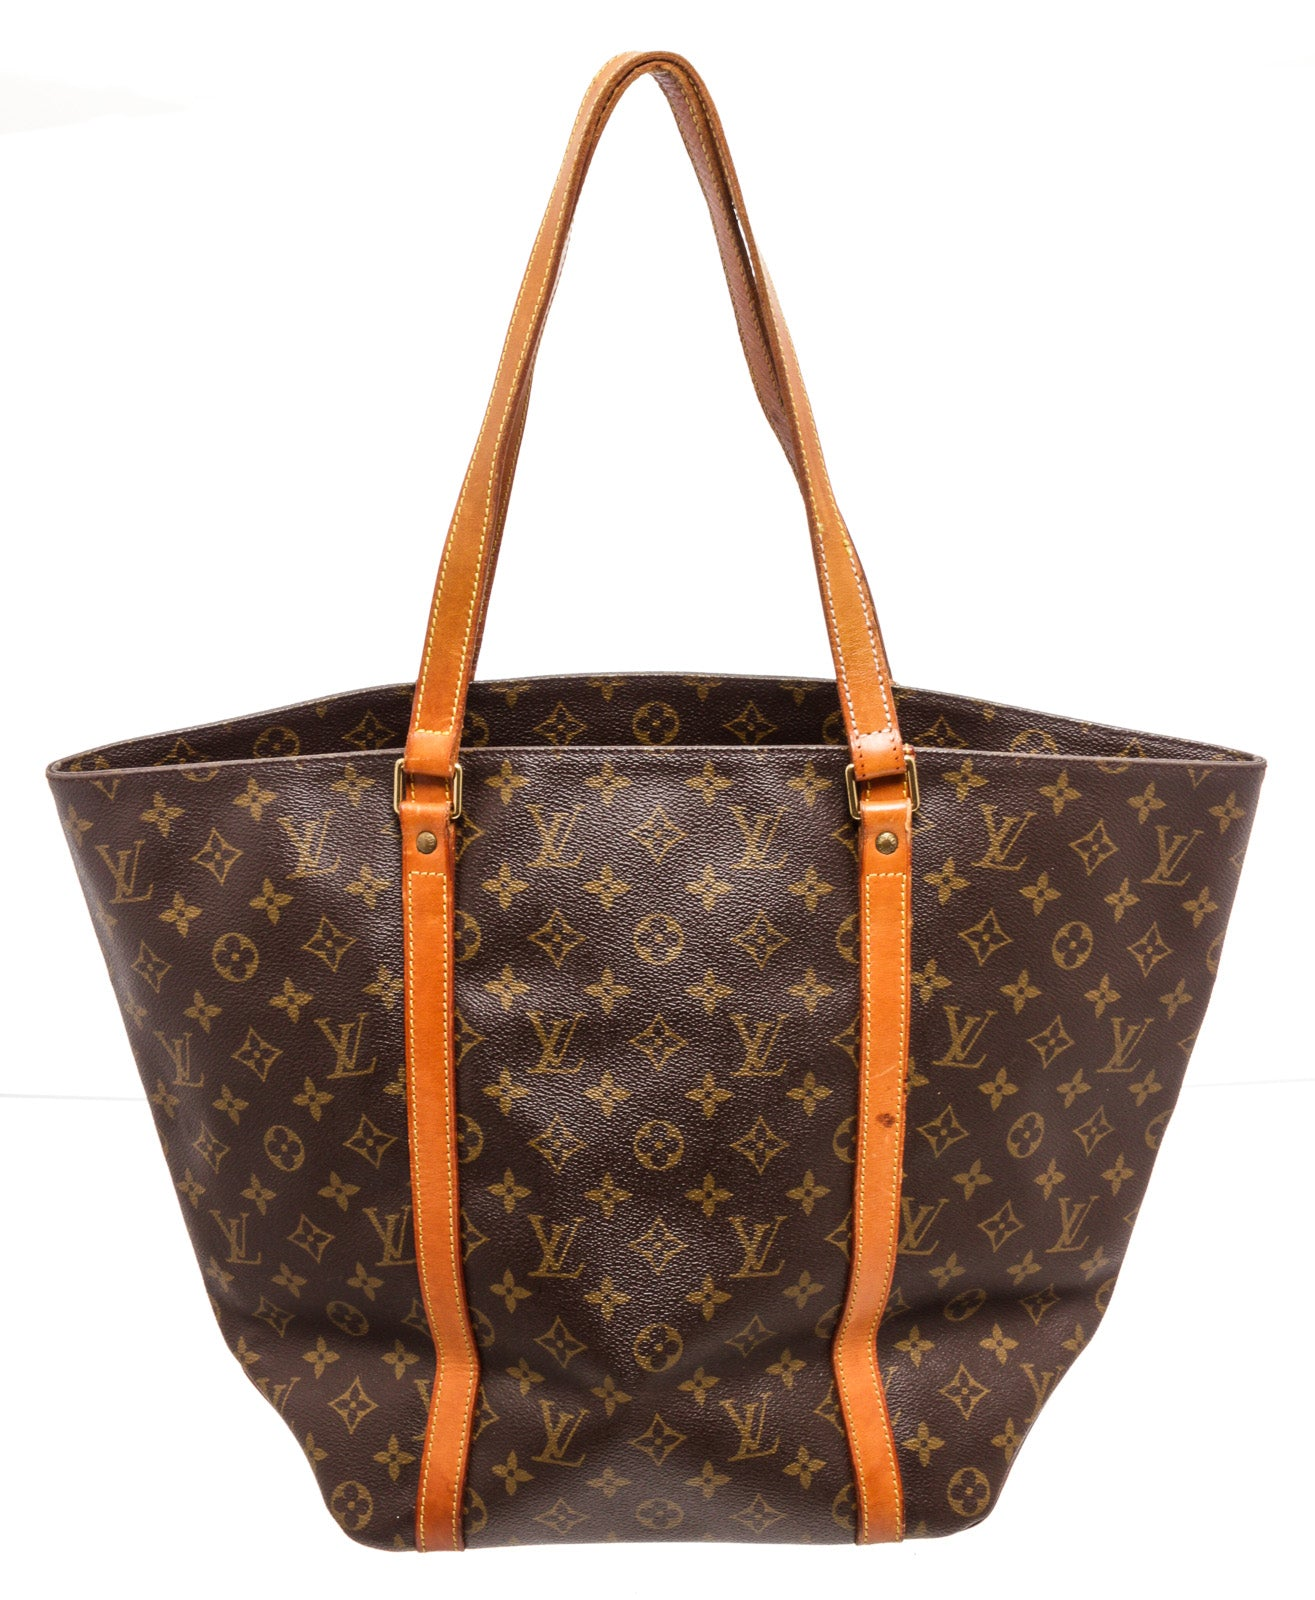 Louis Vuitton Brown Monogram Sac Shopping Handbags